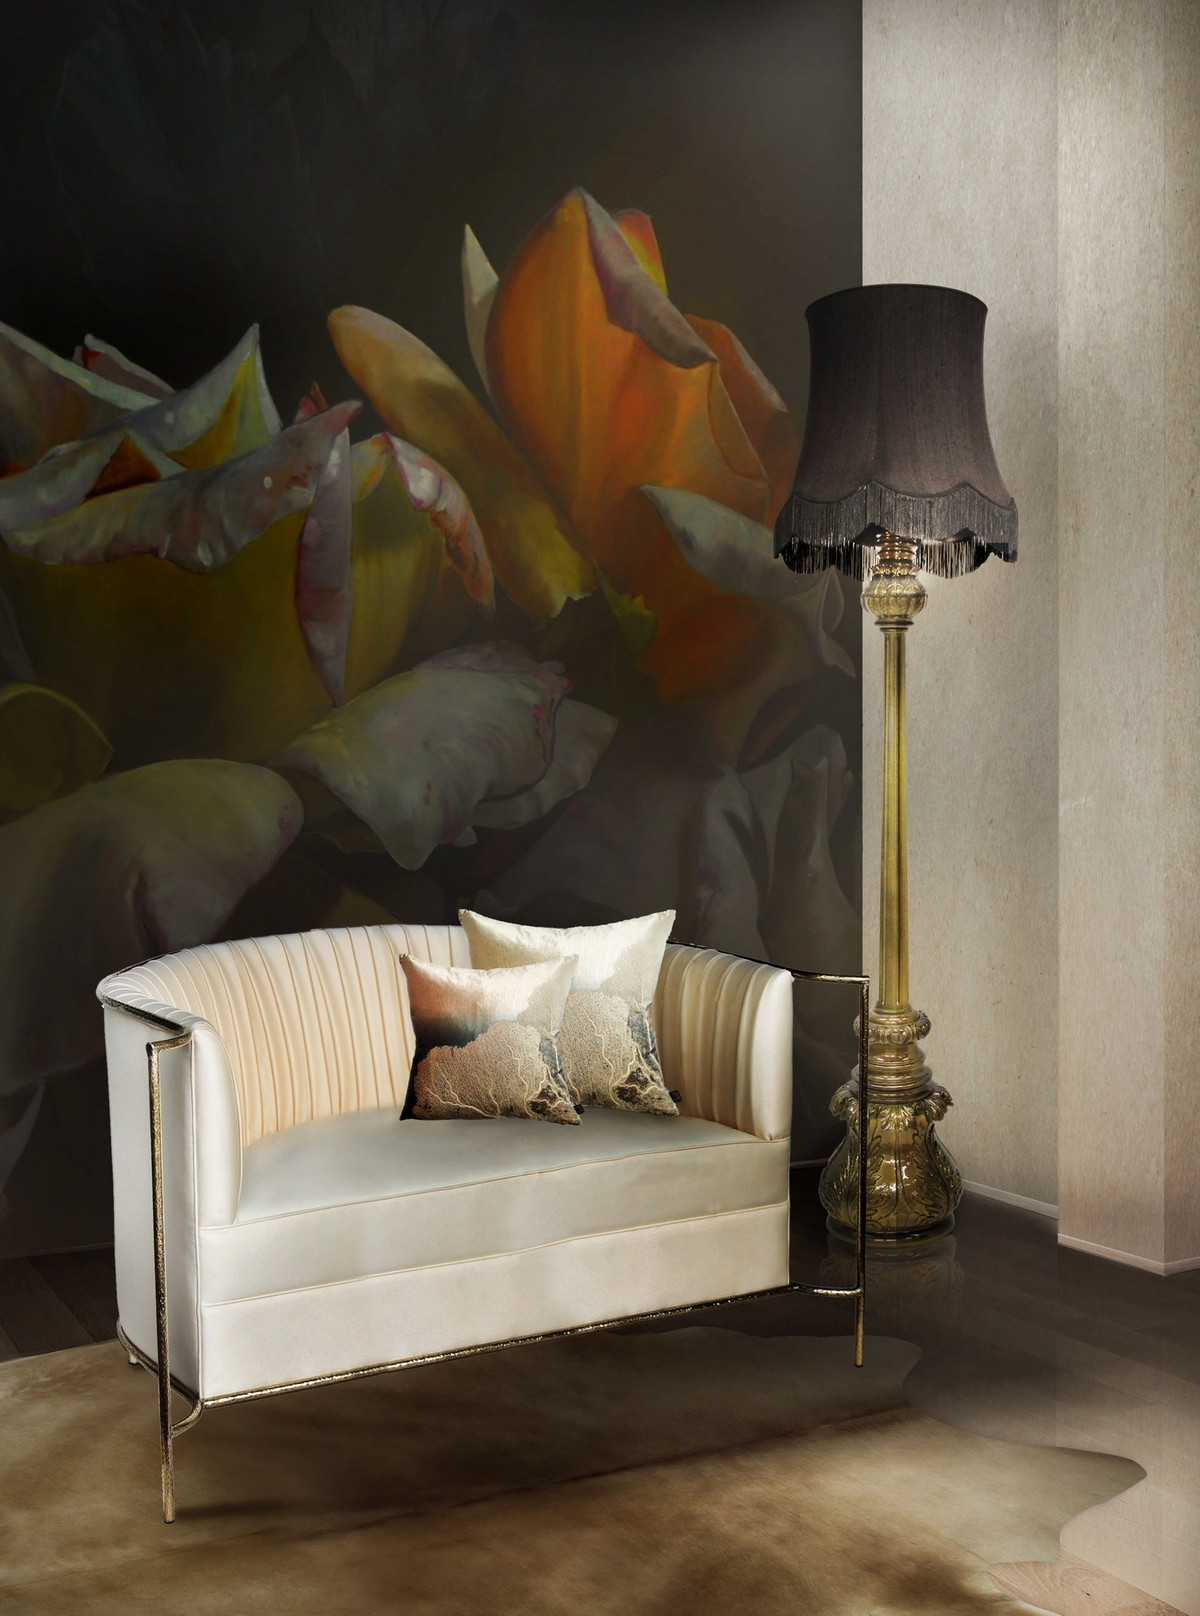 Maison et Objet 2019: Luxury Armchairs at Covet House maison et objet 2019 Maison et Objet 2019: Luxury Armchairs at Covet House desire